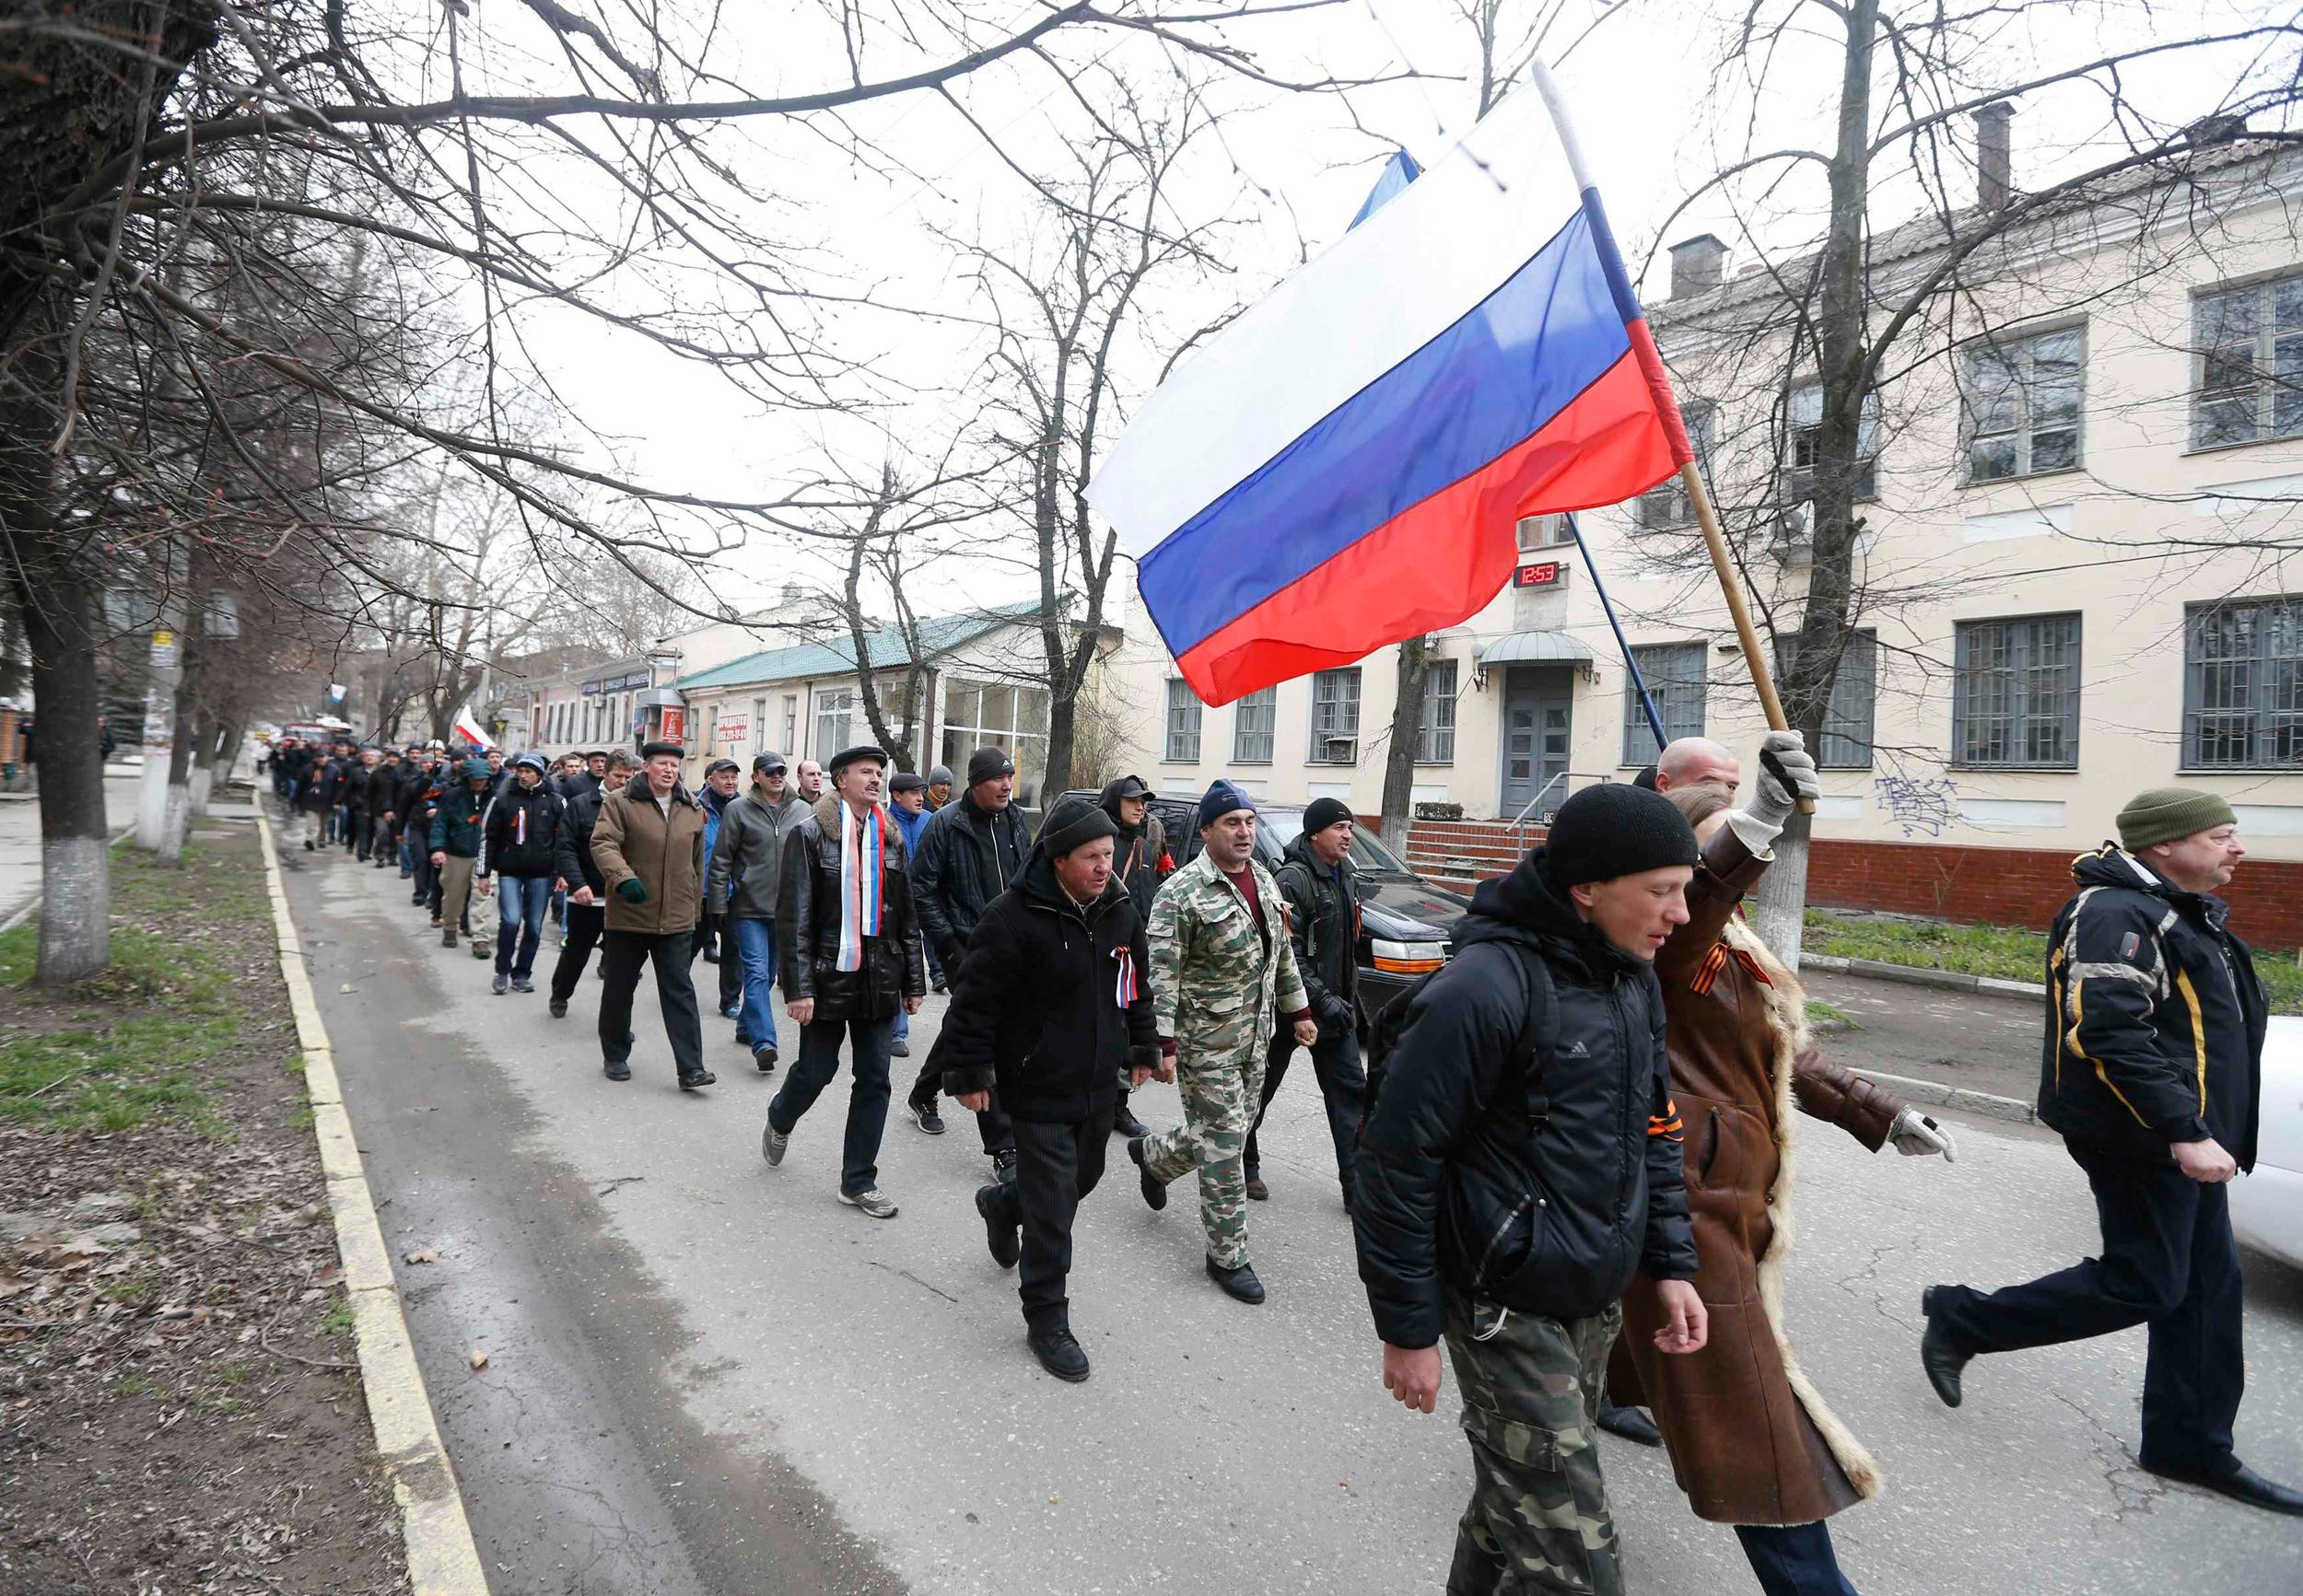 Image: Pro-Russian supporters march with the Russian flag during a rally in Simferopol